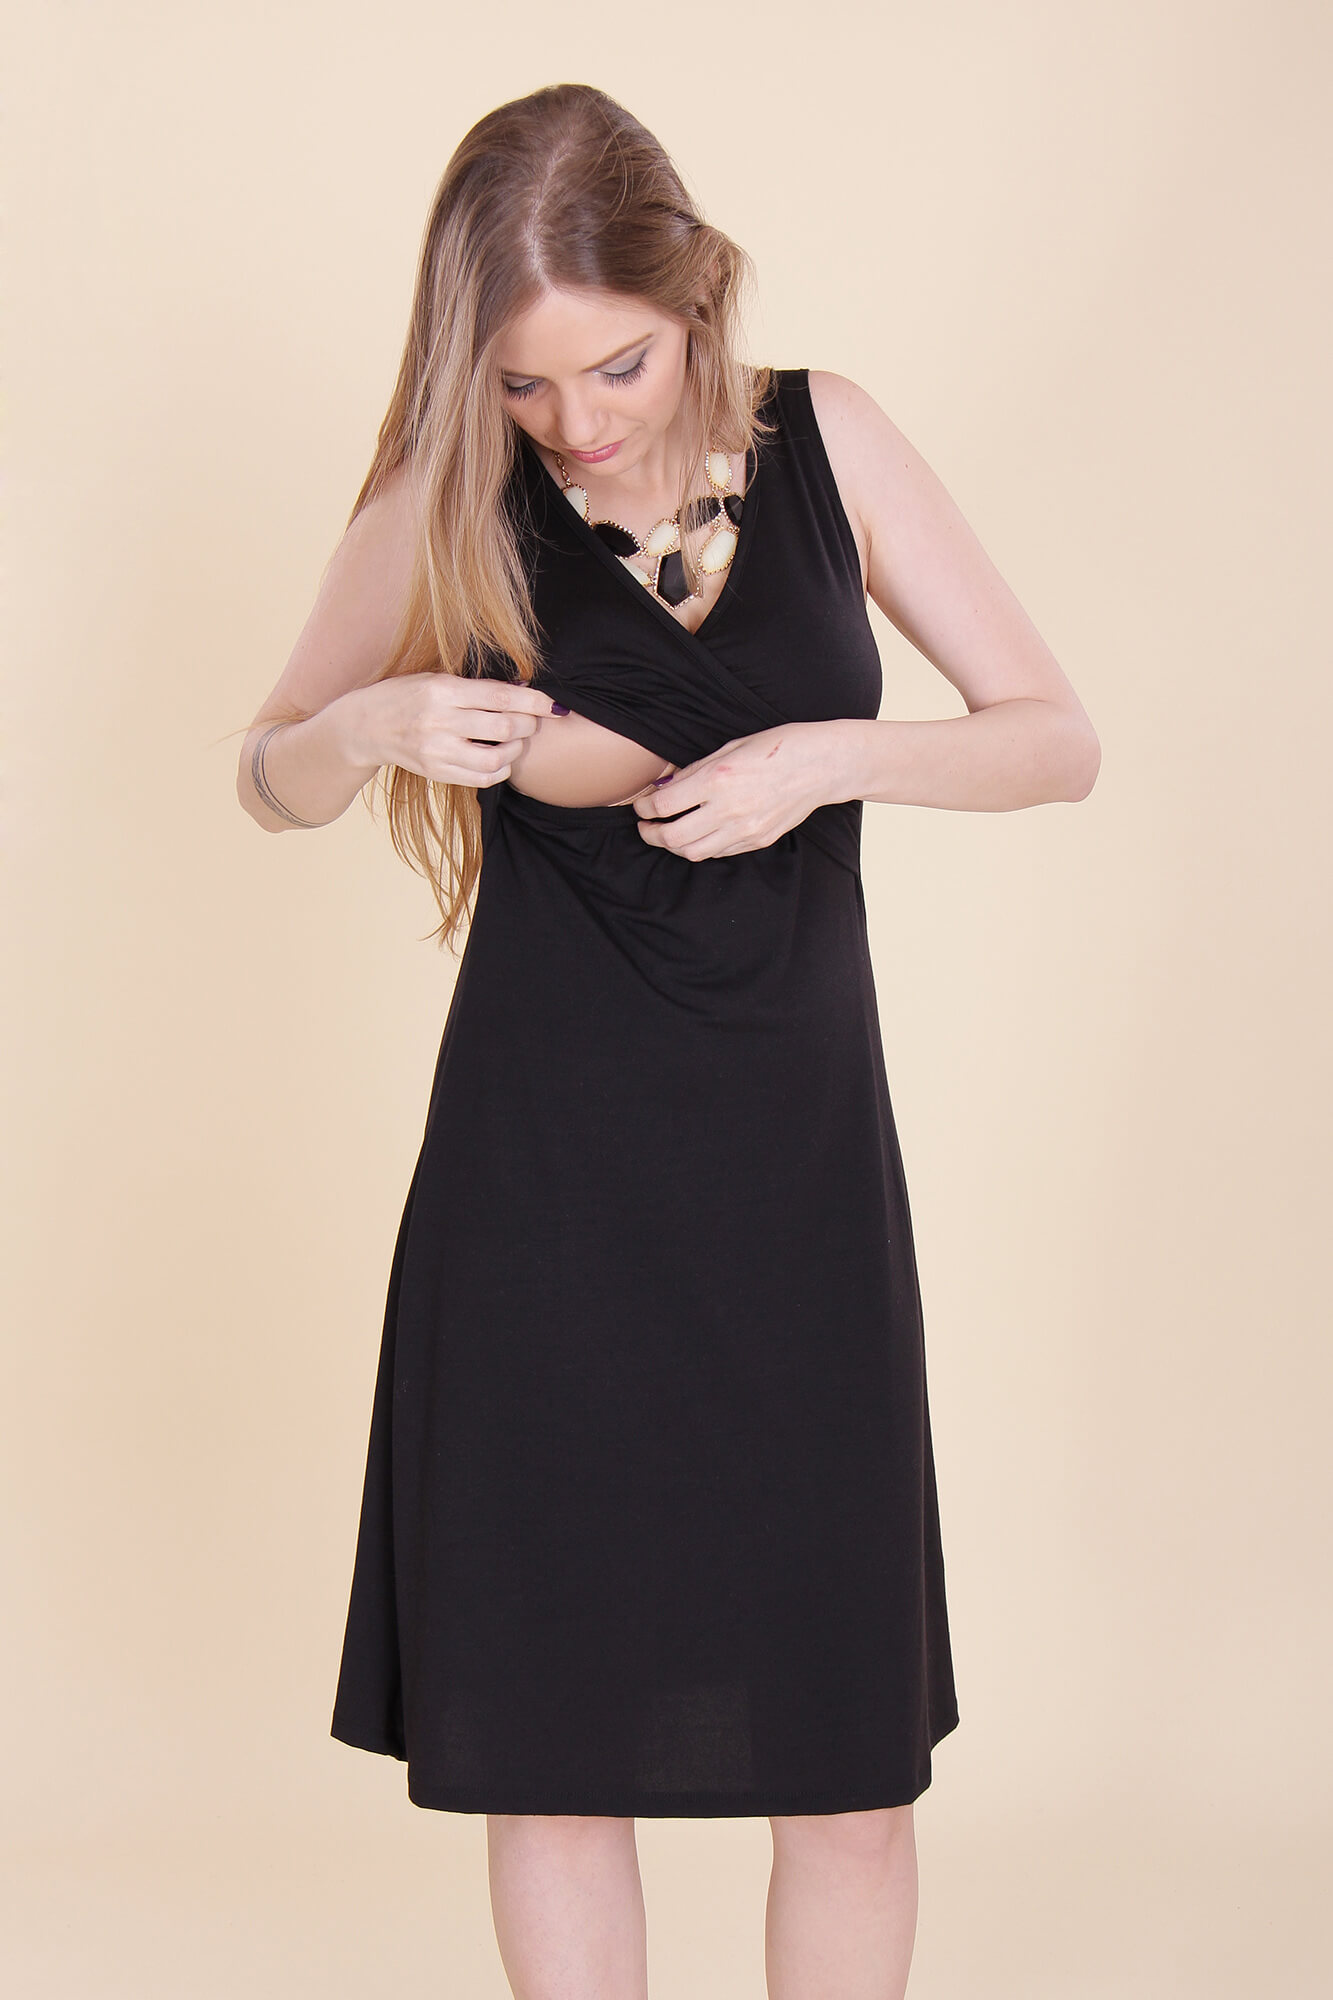 Breast Feeding Dress – Aya – Black